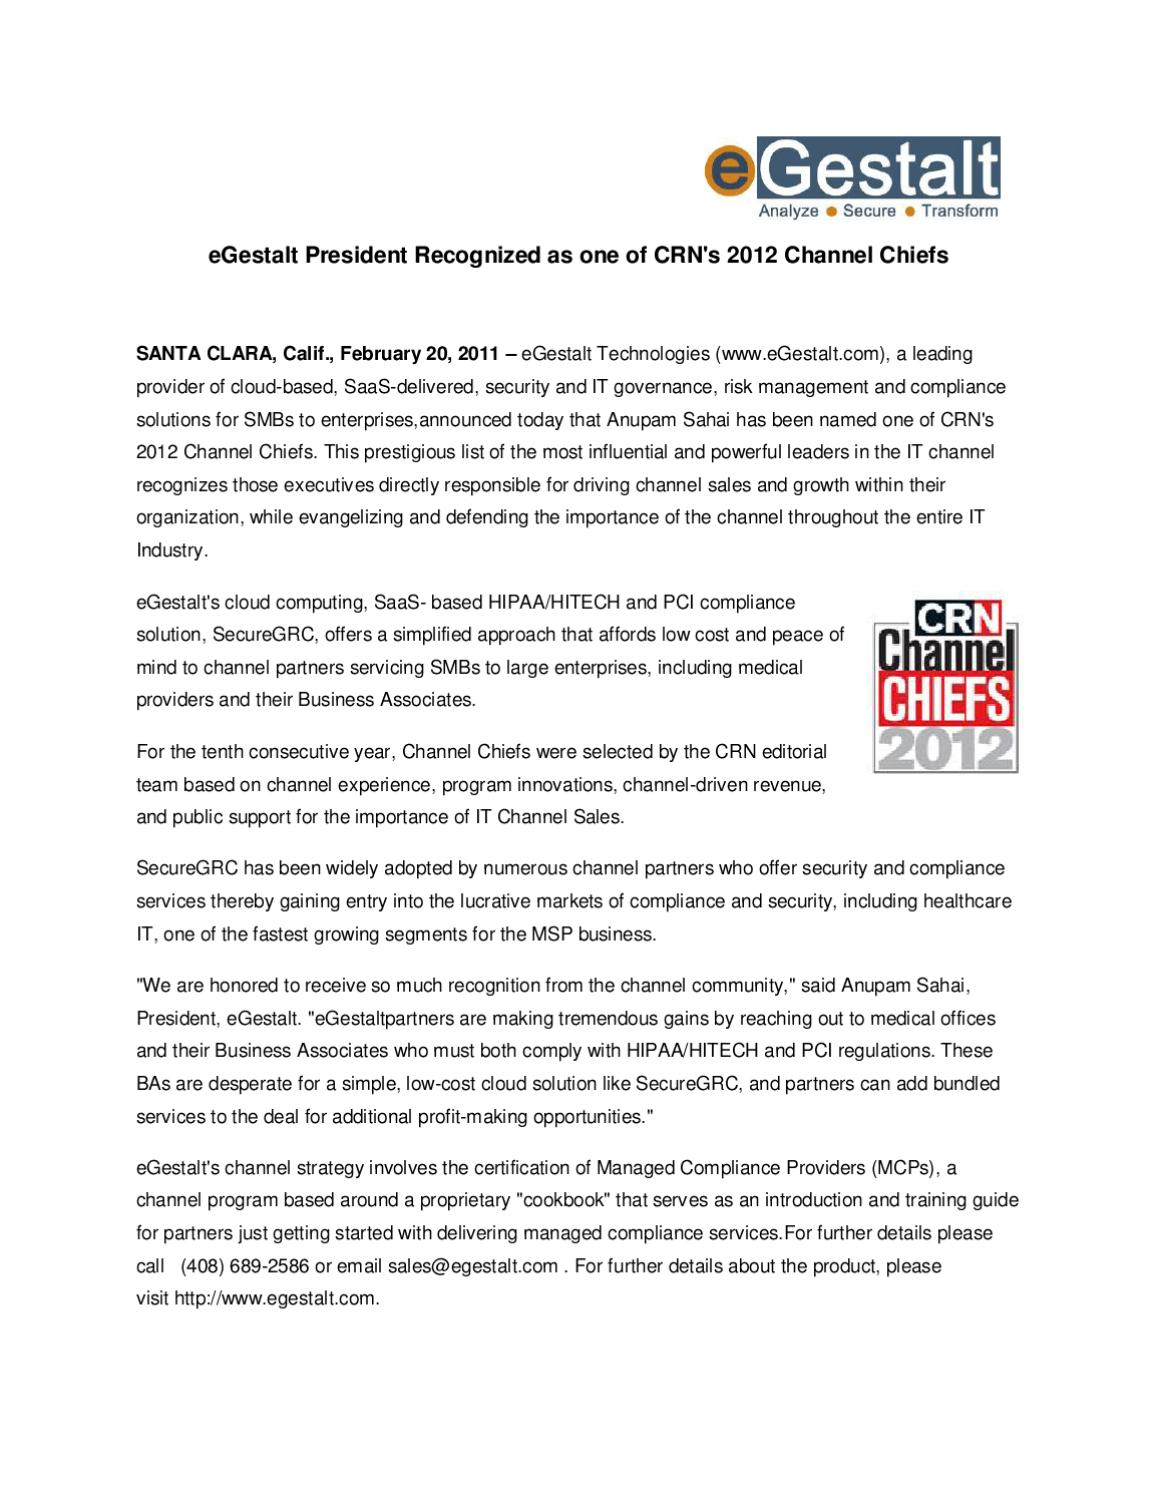 Egestalt President Recognized As One Of Crns 2012 Channel Chiefs By